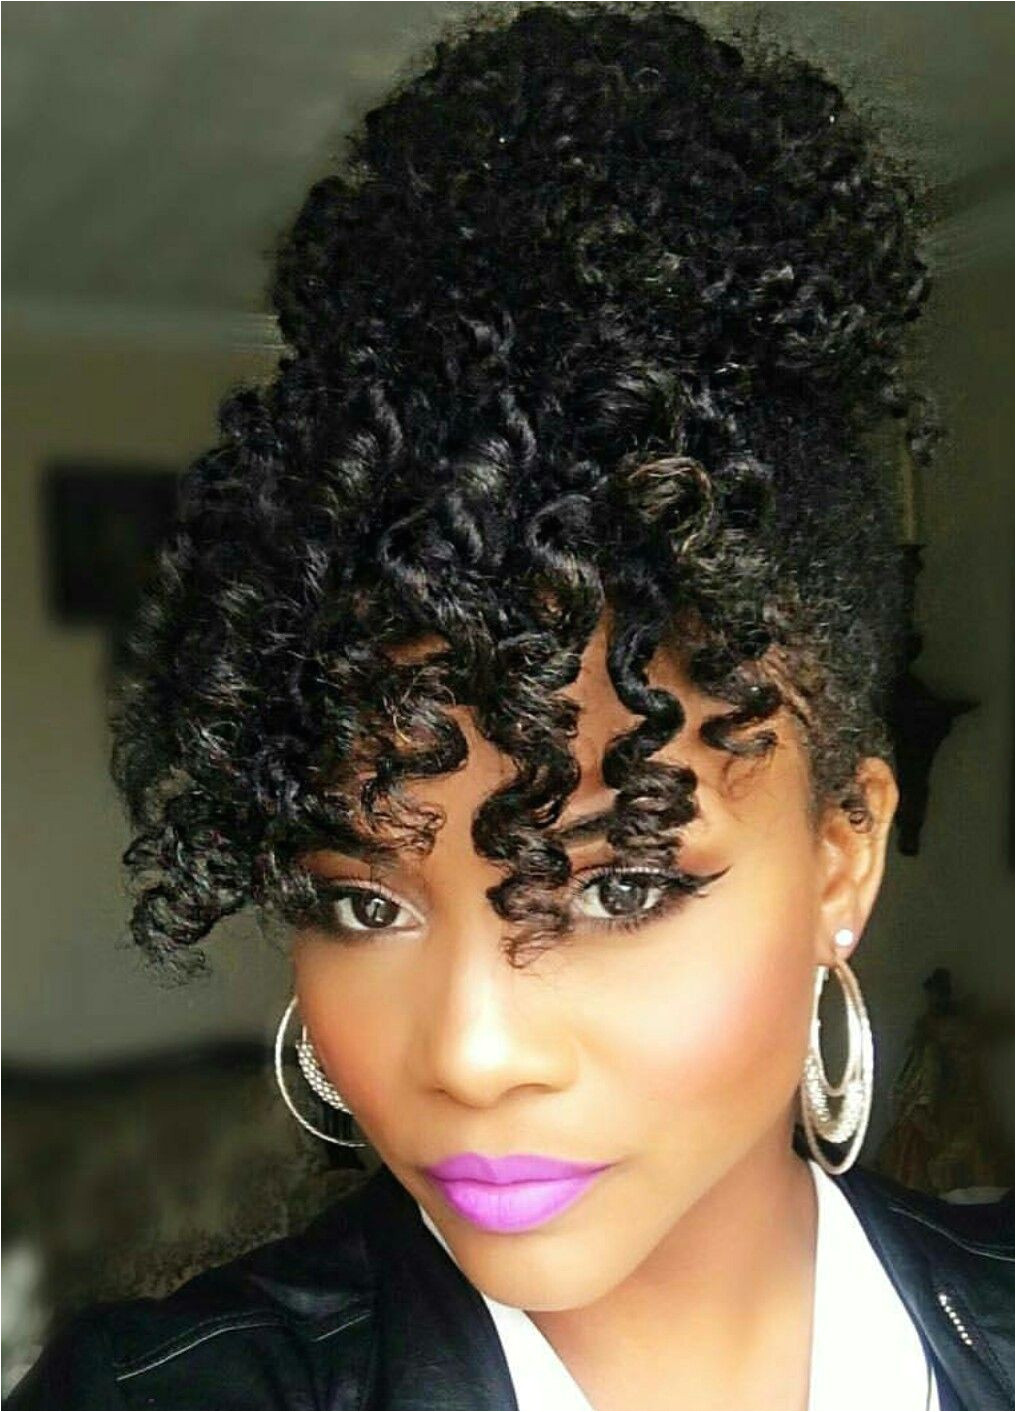 e of the cutest naturalhair hairstyles with a bun and bangs